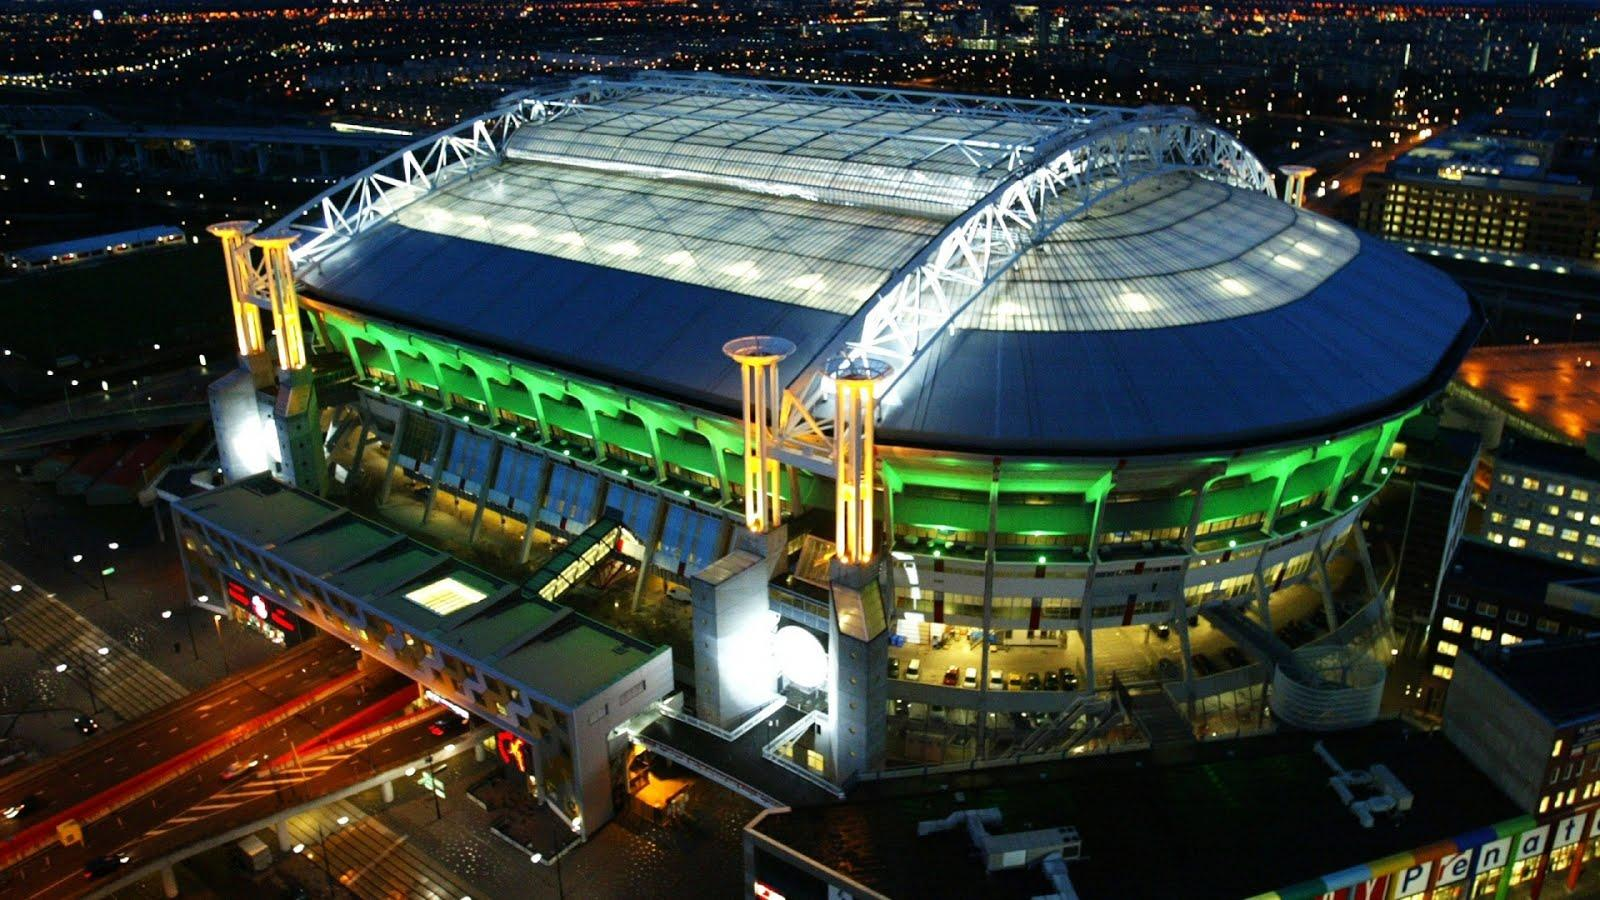 Free Wallpapers for Desktop 1920x1080 HDTV 1080p: Amsterdam Arena